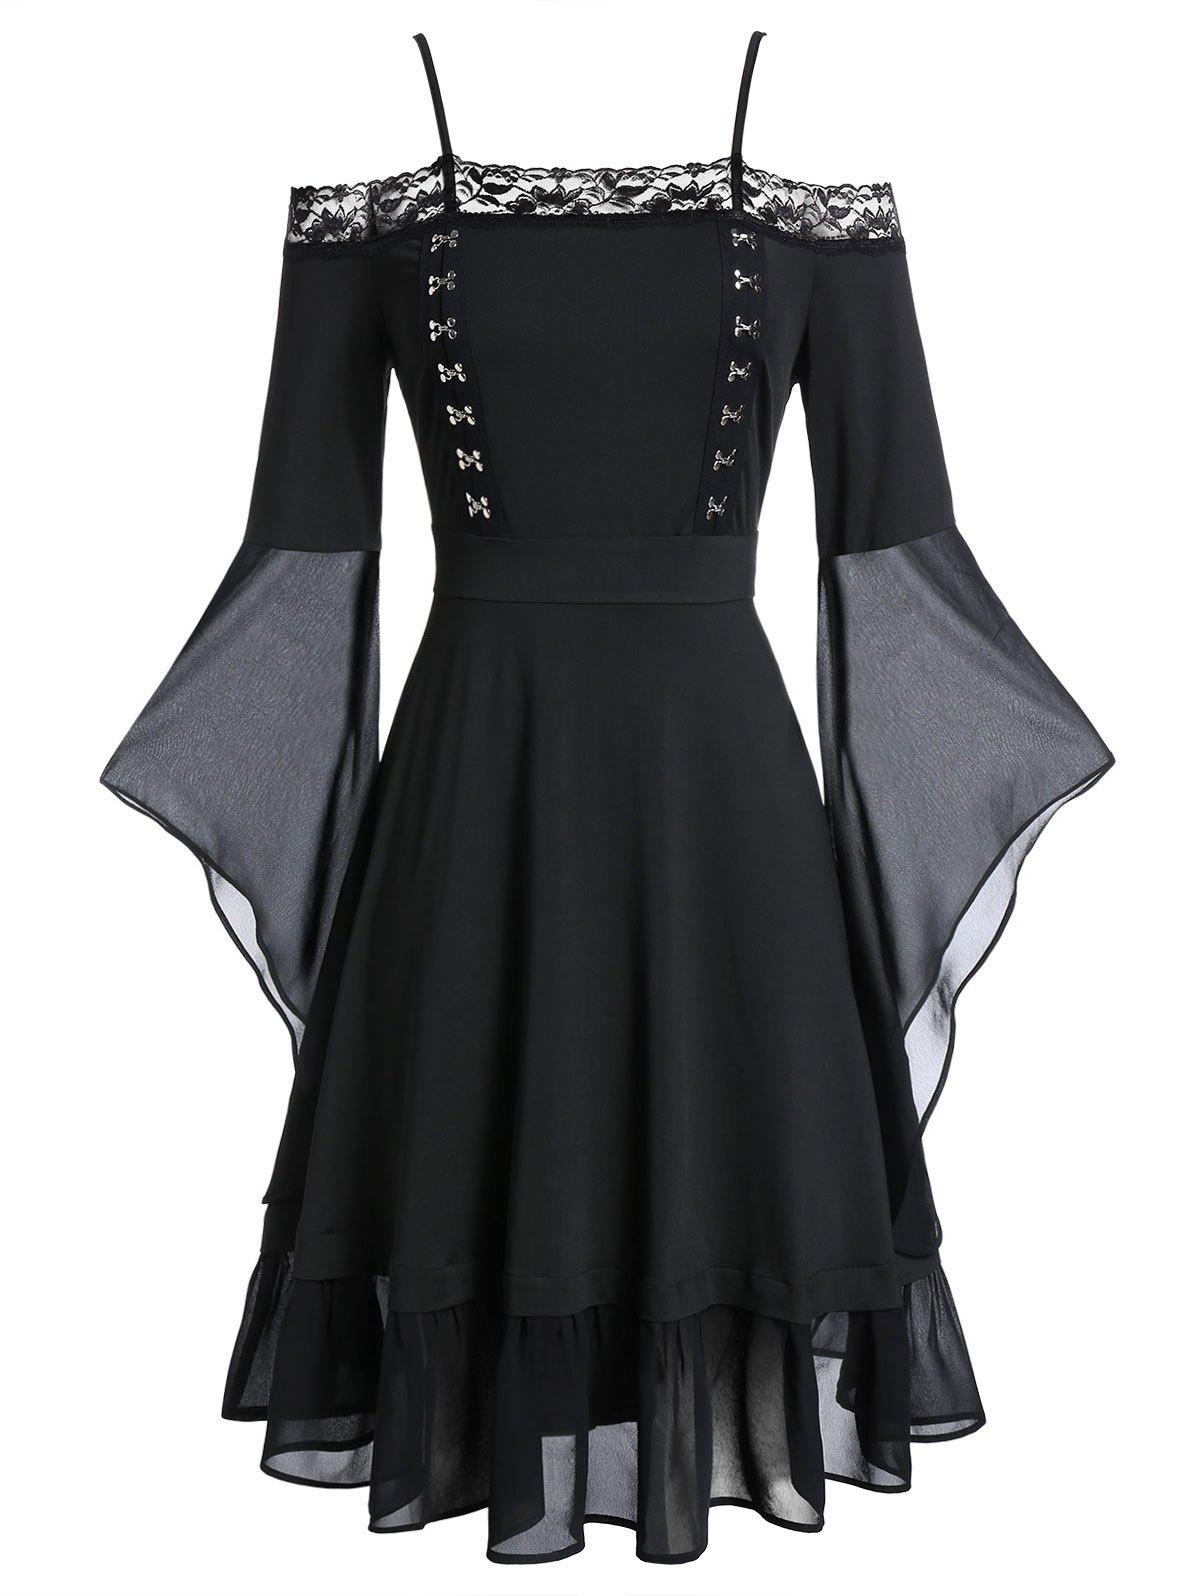 Discount Plus Size Hook and Eye Flare Sleeve Gothic Halloween Dress